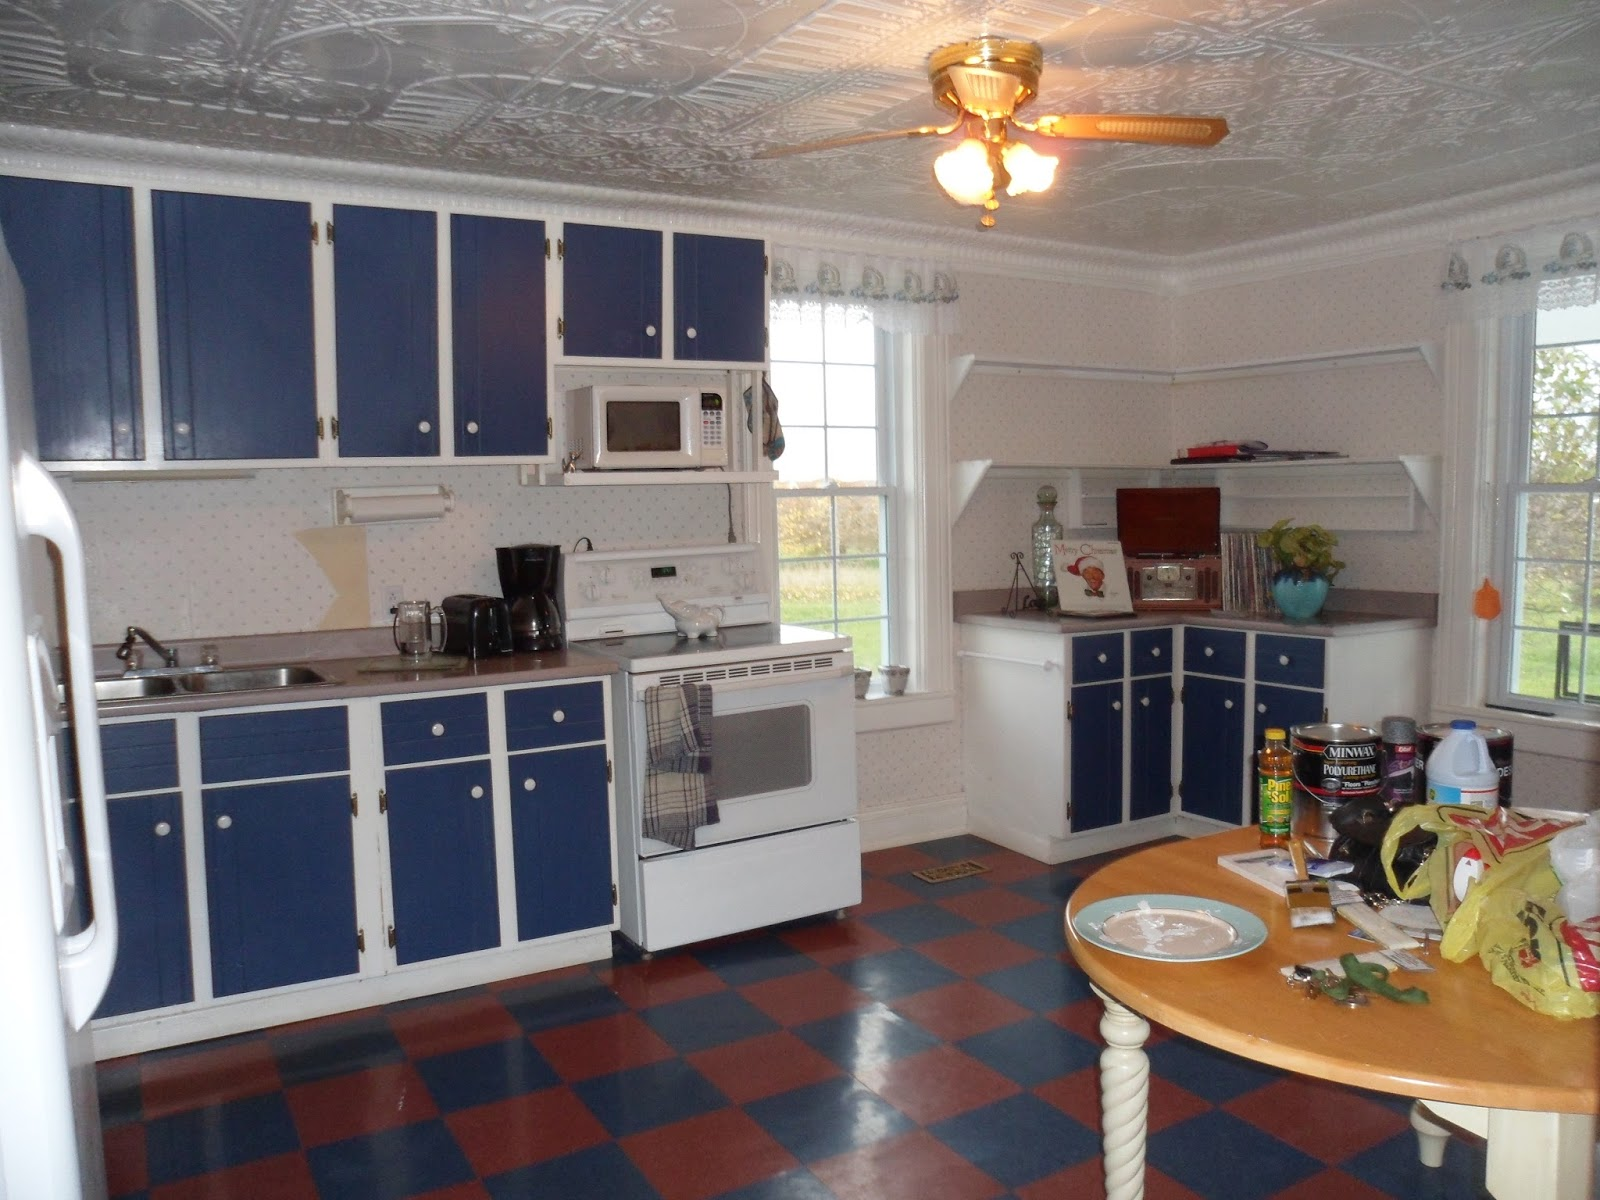 10 diy kitchen cabinet makeovers - before & after photos that